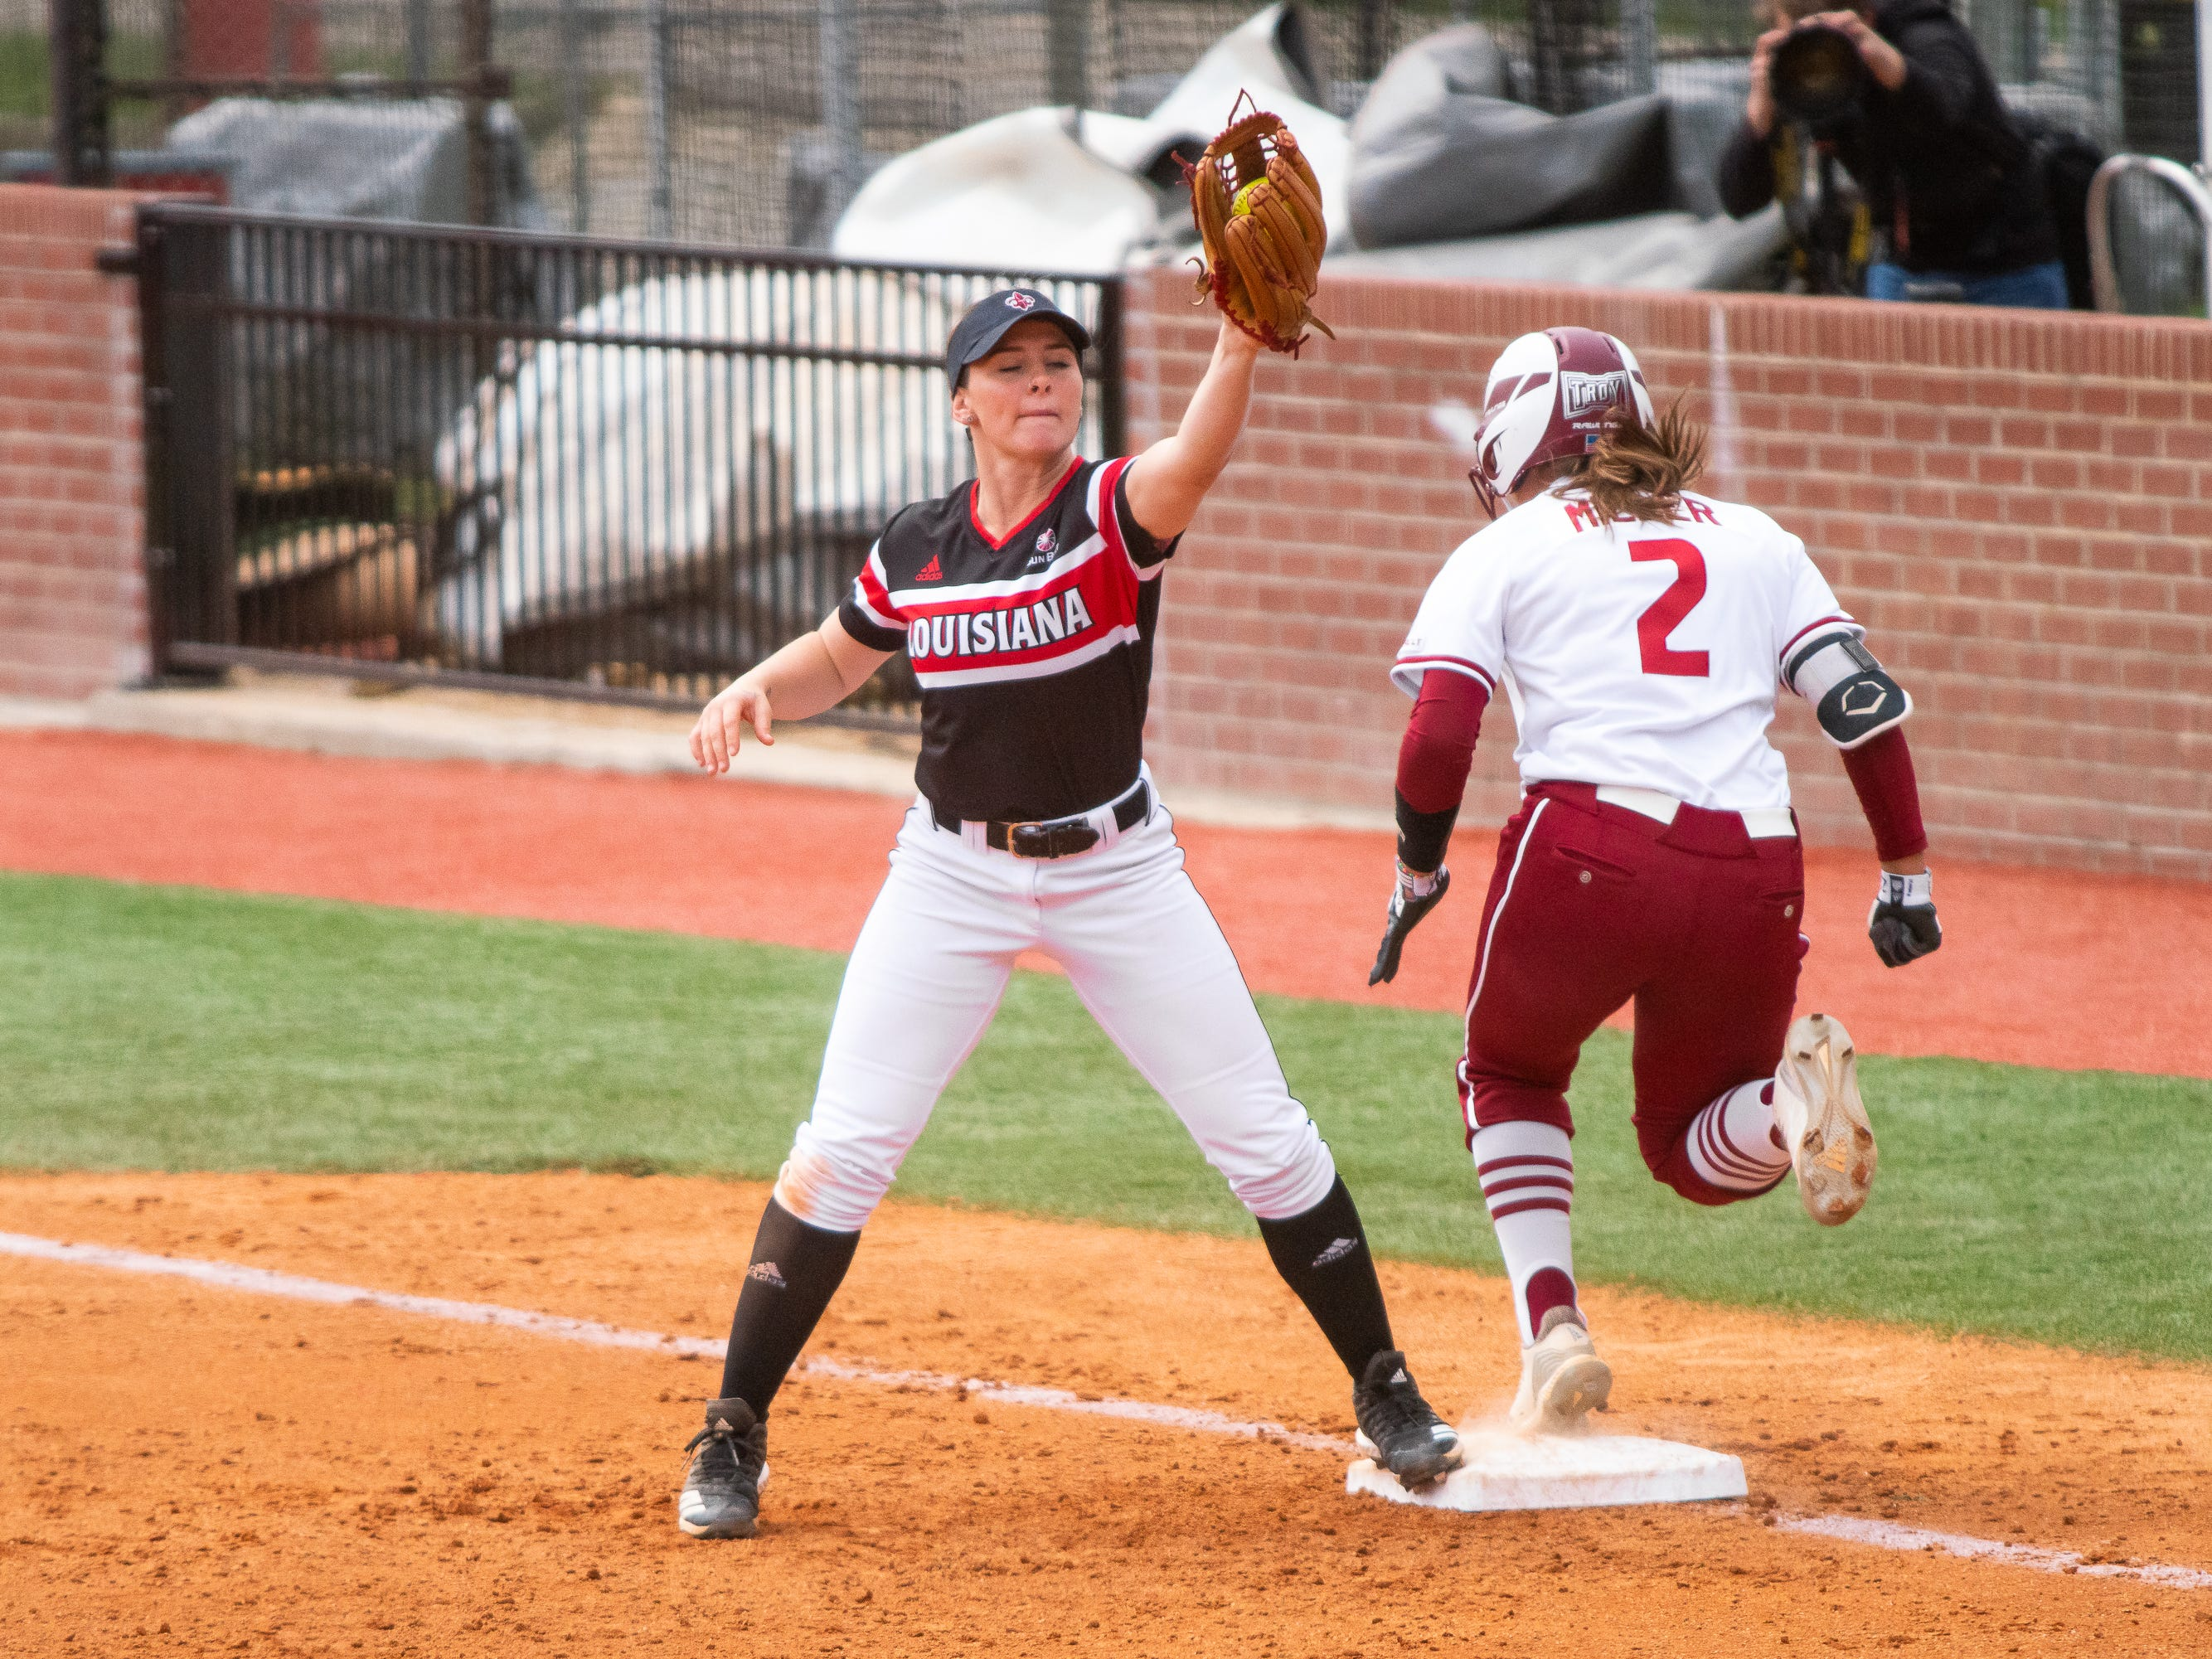 UL's Keeli Milligan makes a catch at first base to get the runner out as the Ragin' Cajuns take on the Troy Trojans at Yvette Girouard Field at Lamson Park on Saturday, March 16, 2019.